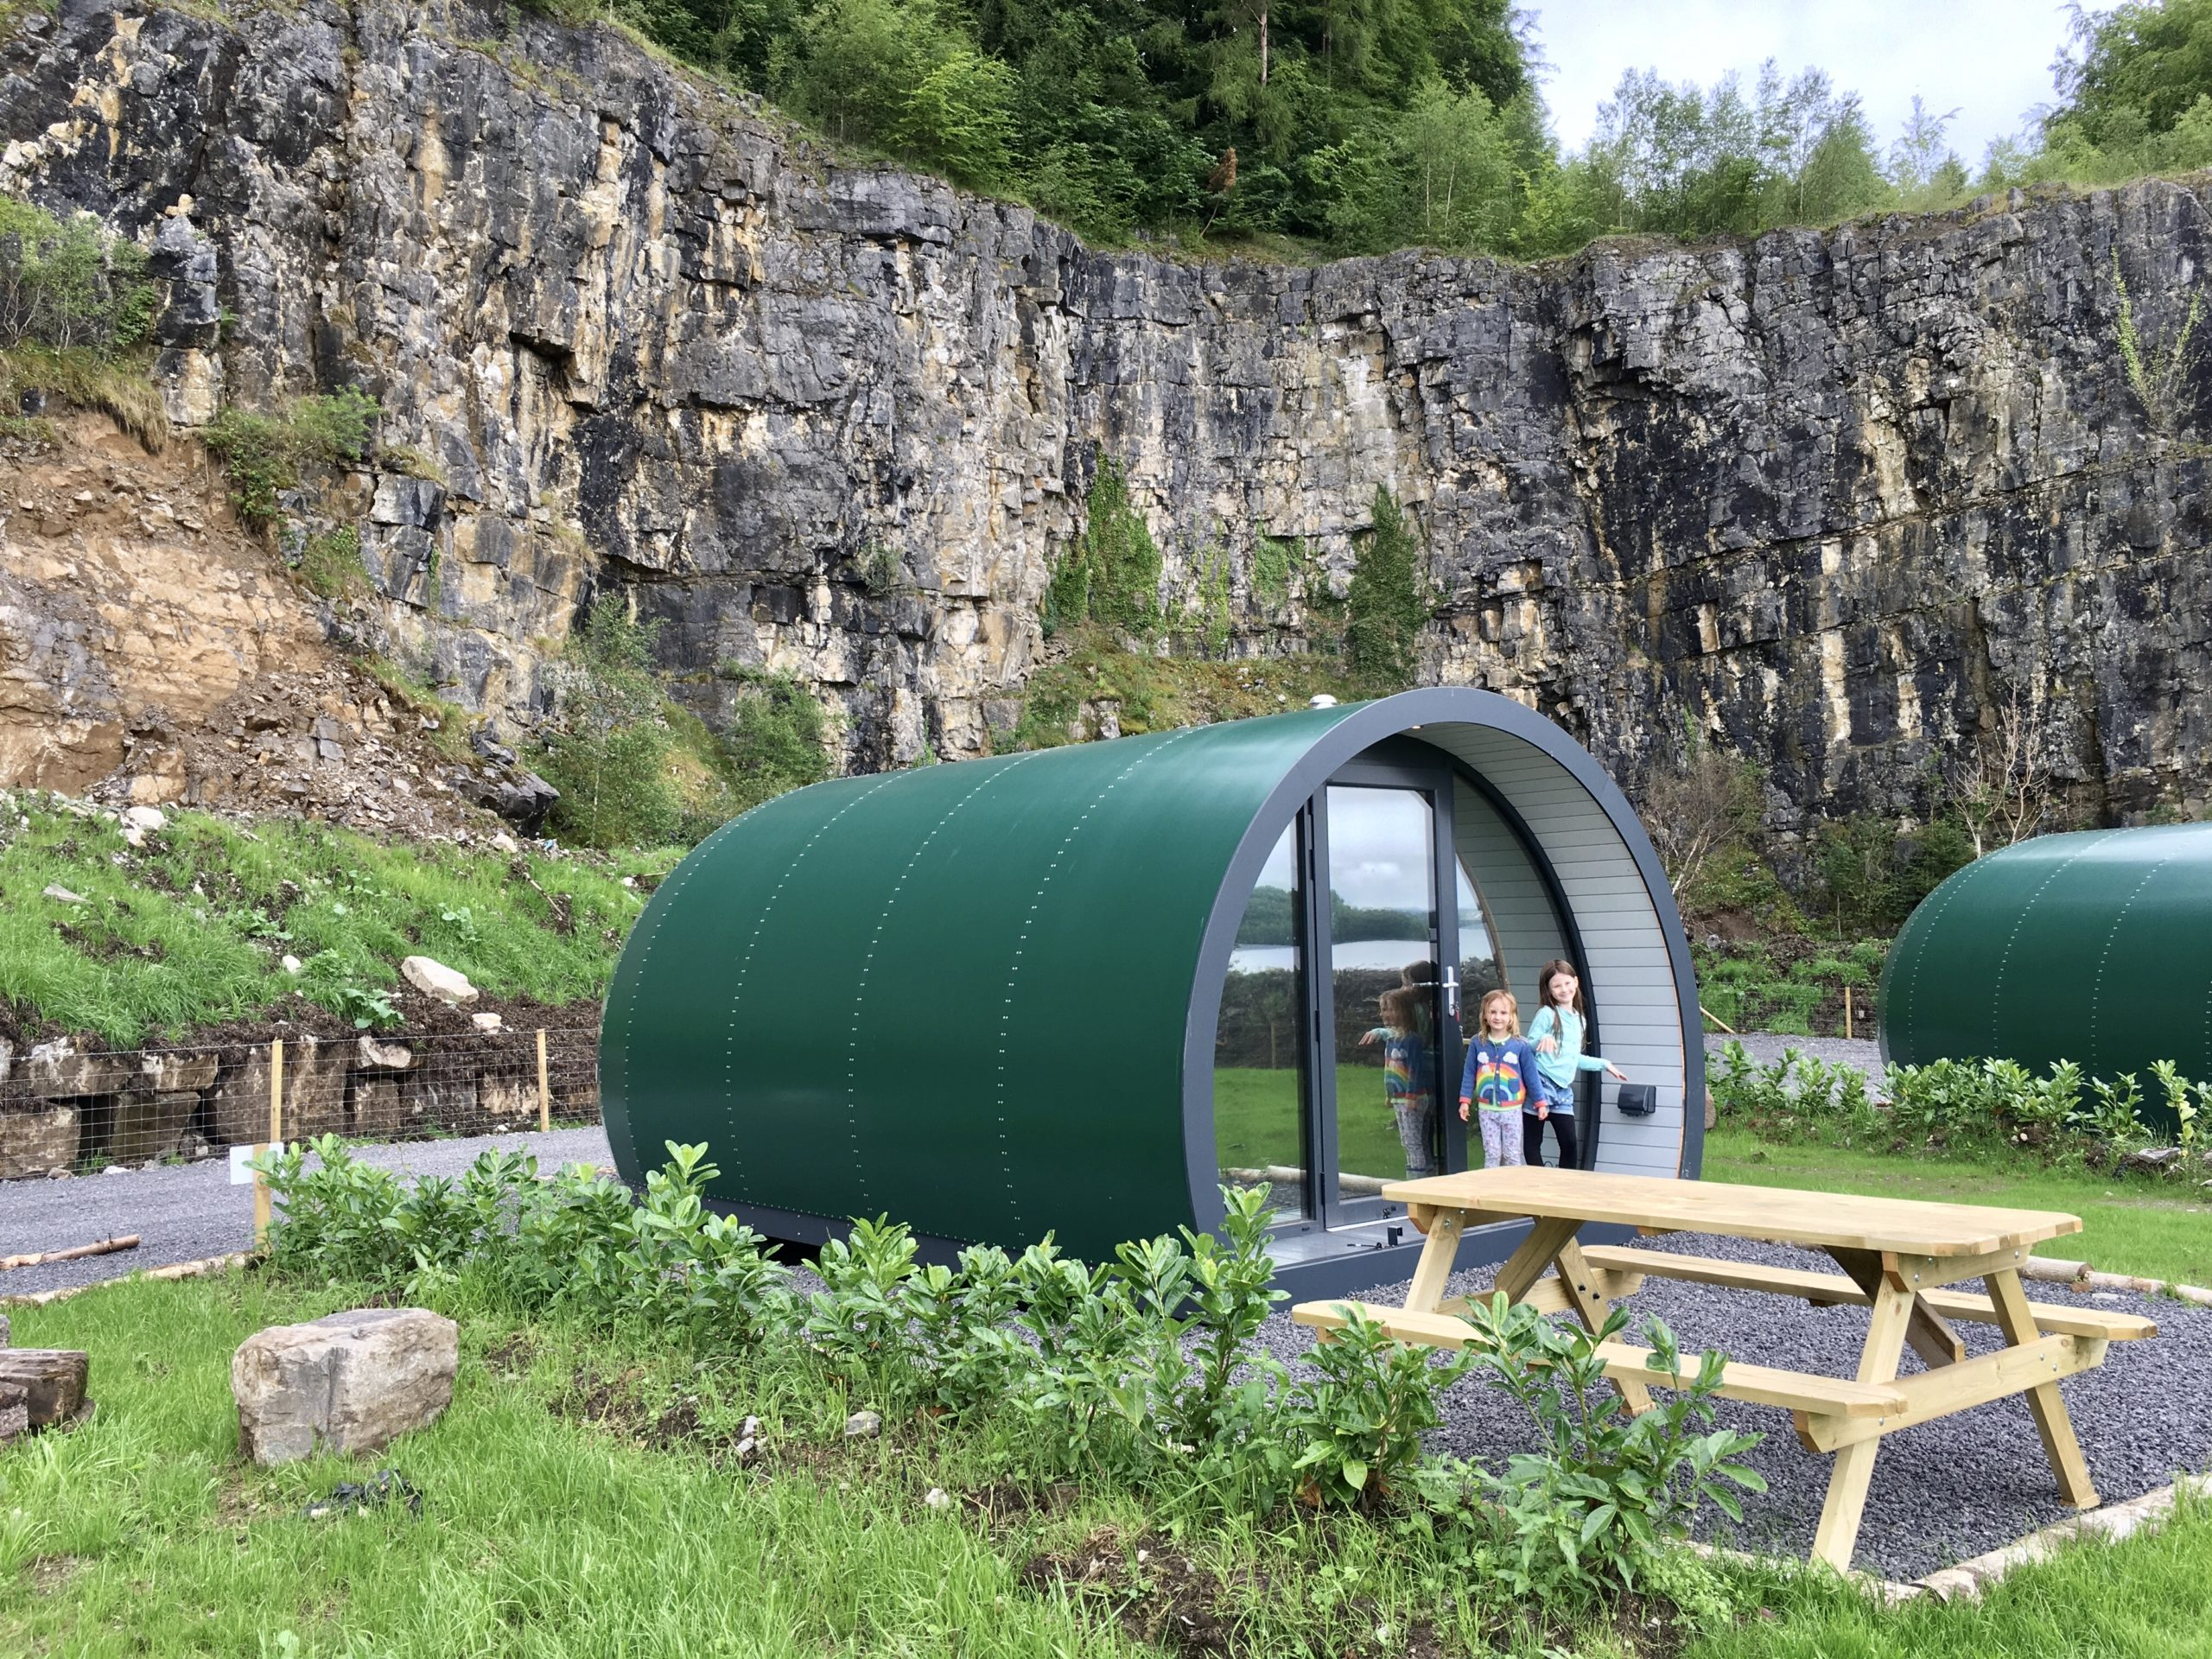 Lough Erne Camping pods outdoor area